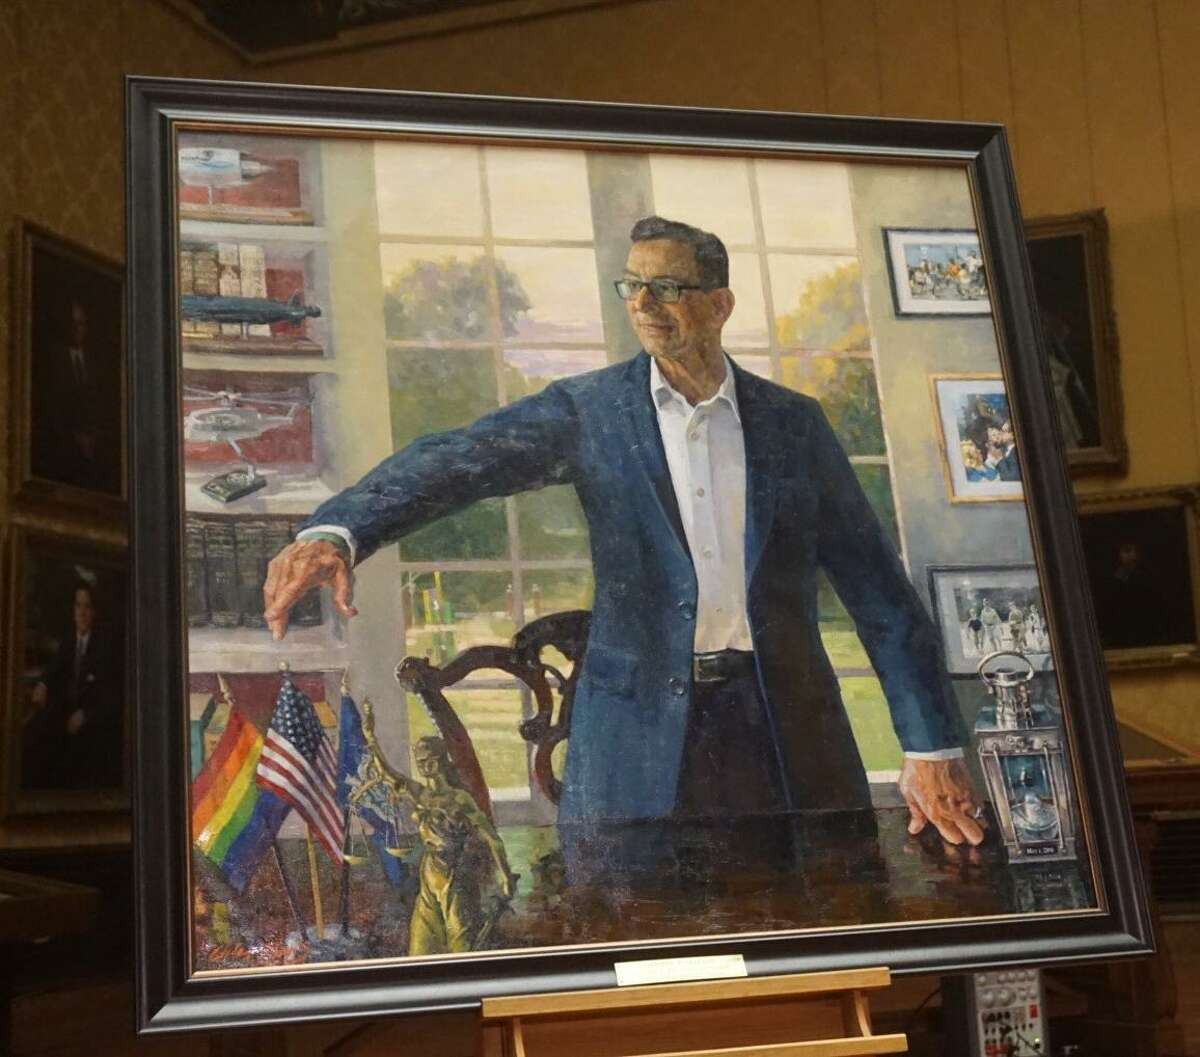 Gov. Dannel P. Malloy's official portrait was painted by Connecticut artist Christopher Zhang. It was unveiled at a ceremony at the Museum of Connecticut History in Hartford, Conn. on December 20, 2018.